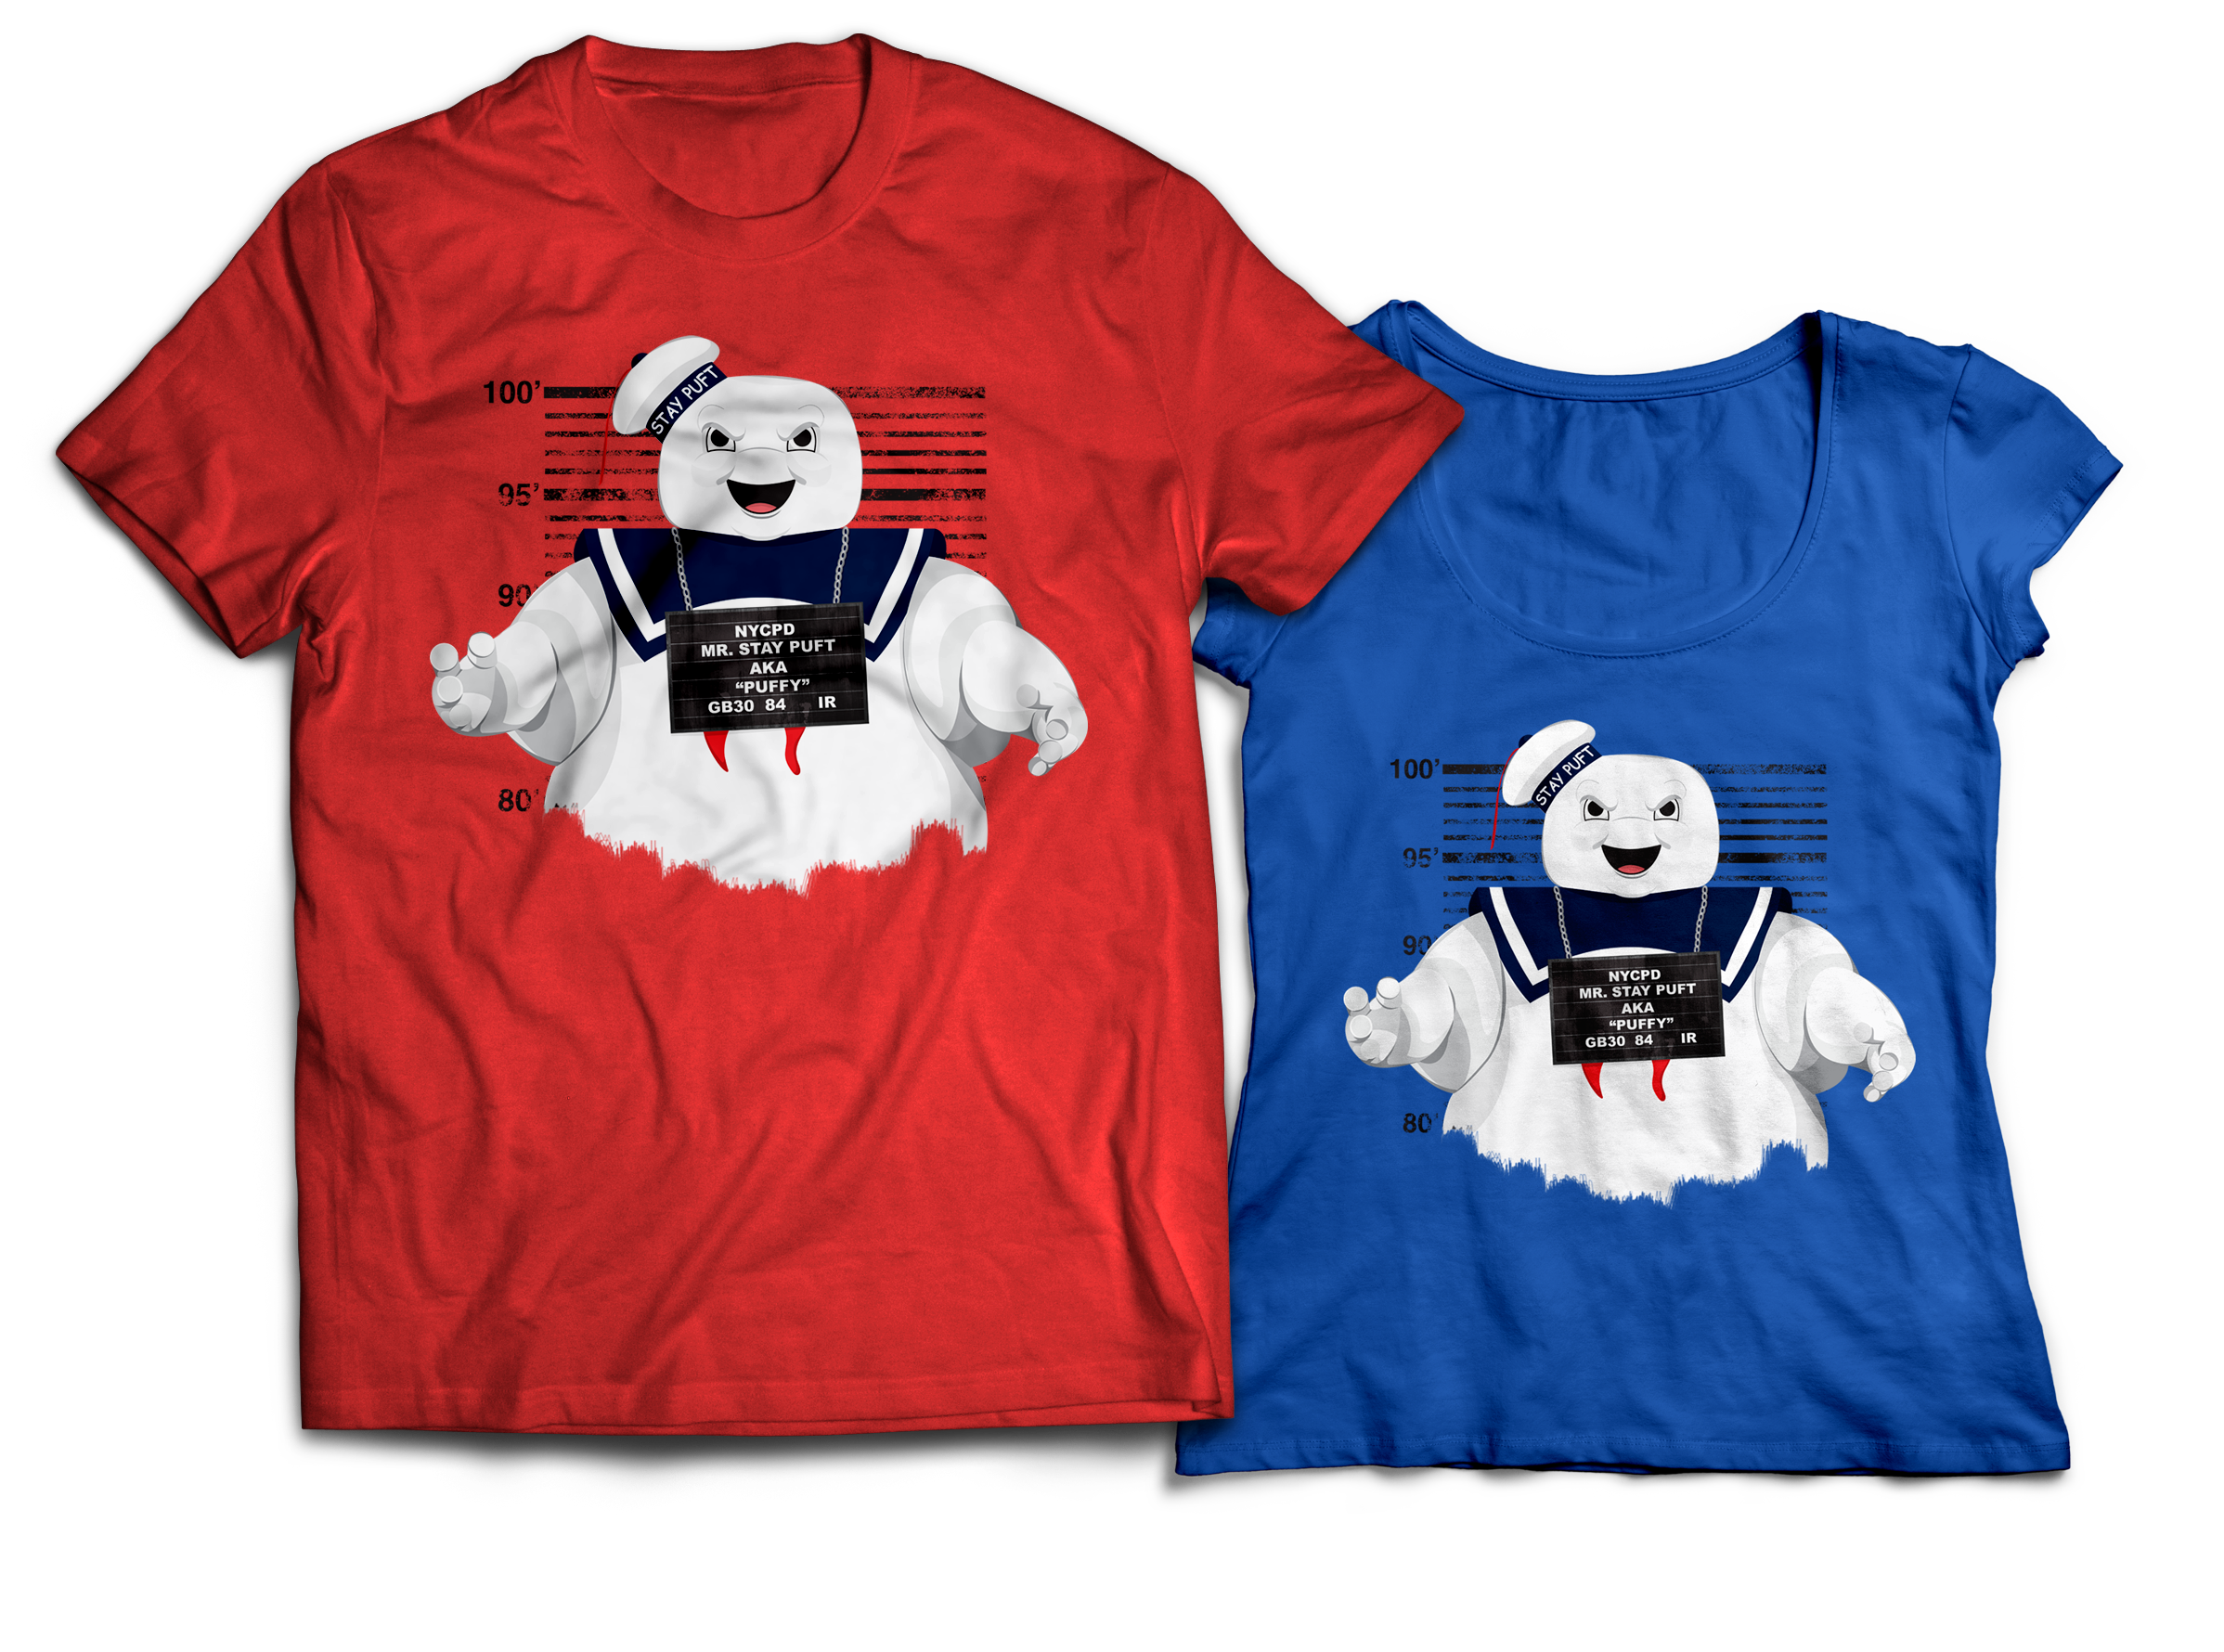 Ghostbusters Stay Puft Marshmallow Man T-shirt Design Jlane Design Teepublic